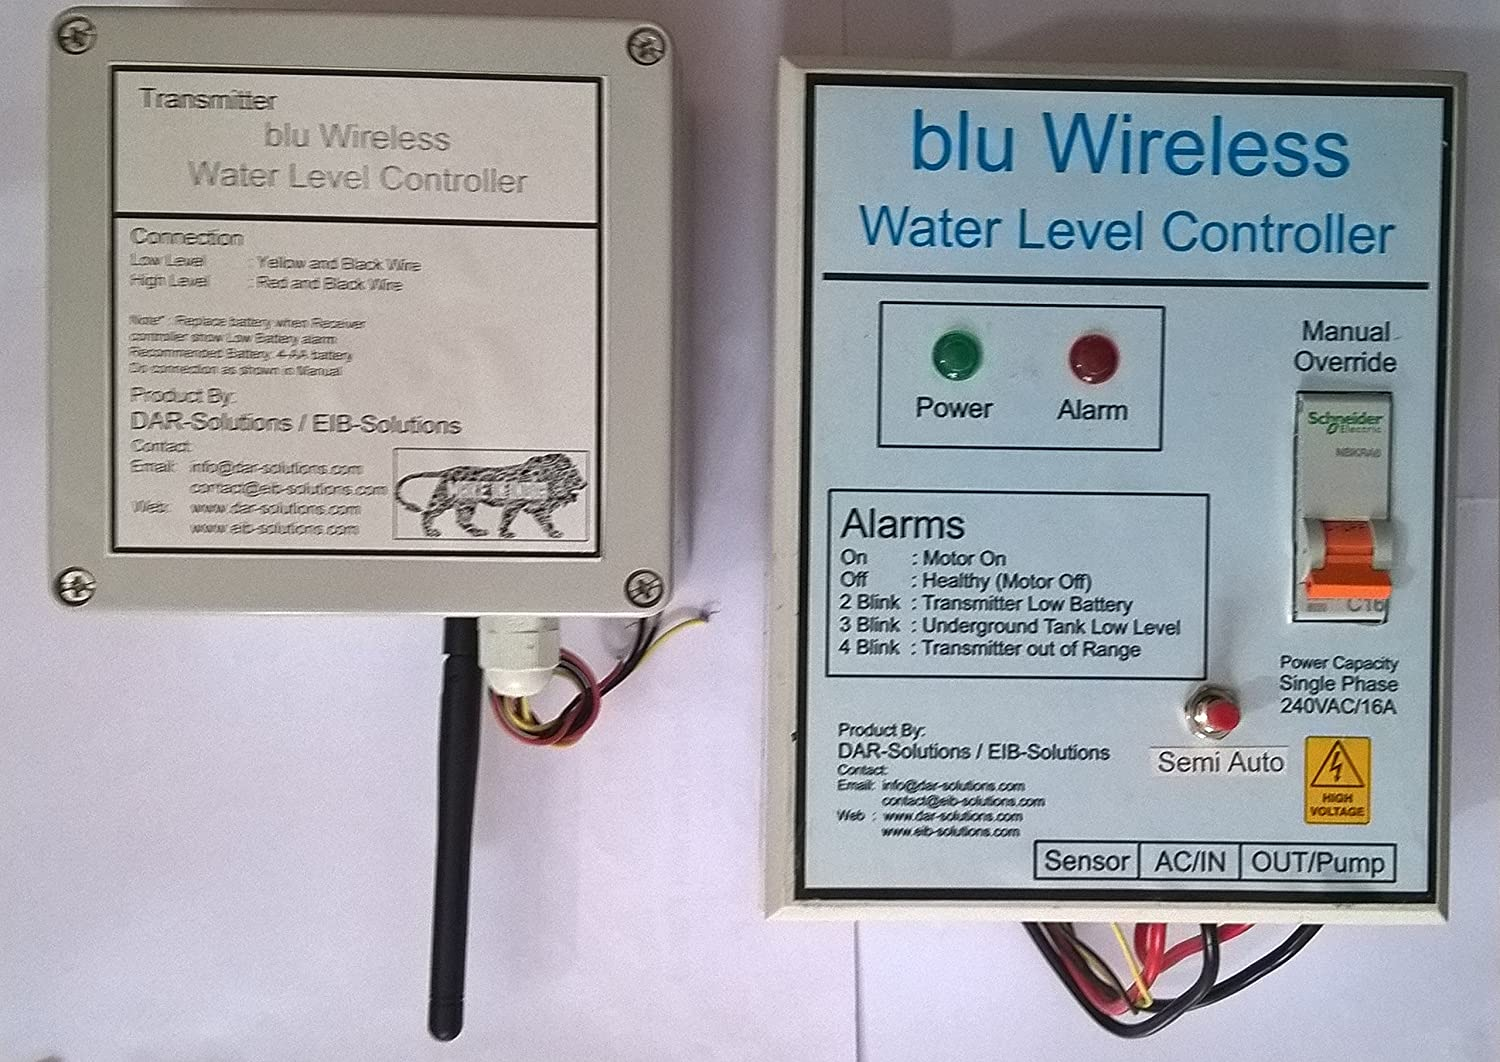 Blu Wireless Water Level Controller: Amazon.in: Electronics